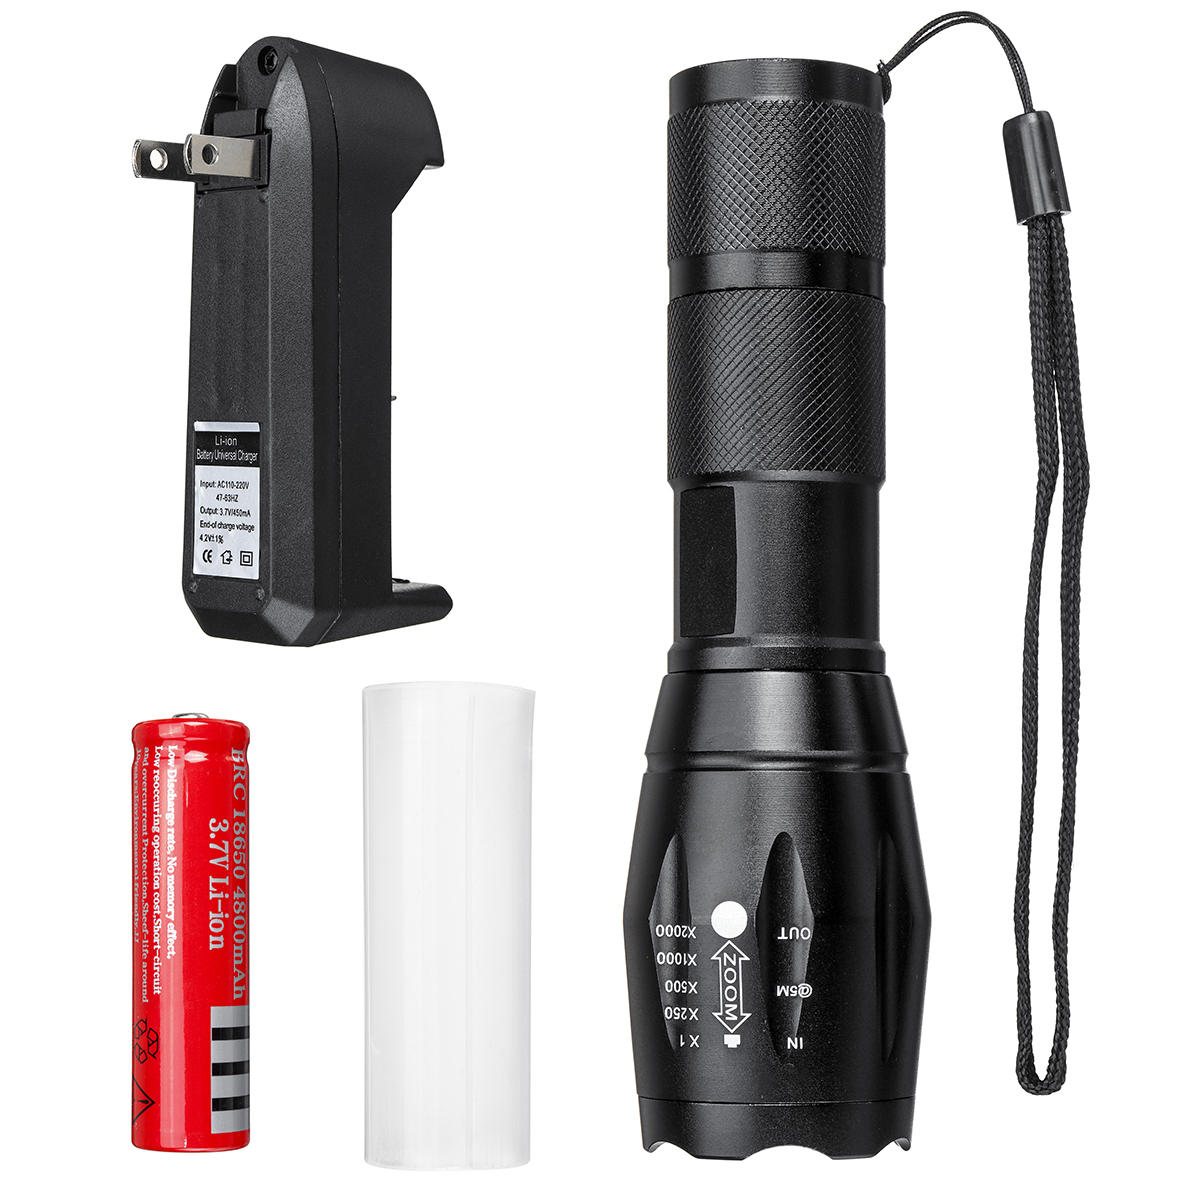 XANES T6 10W LED Flashlight Rechargeable 5 Modes Tactical Torch Light 18650 Battery US/EU/UK Plug